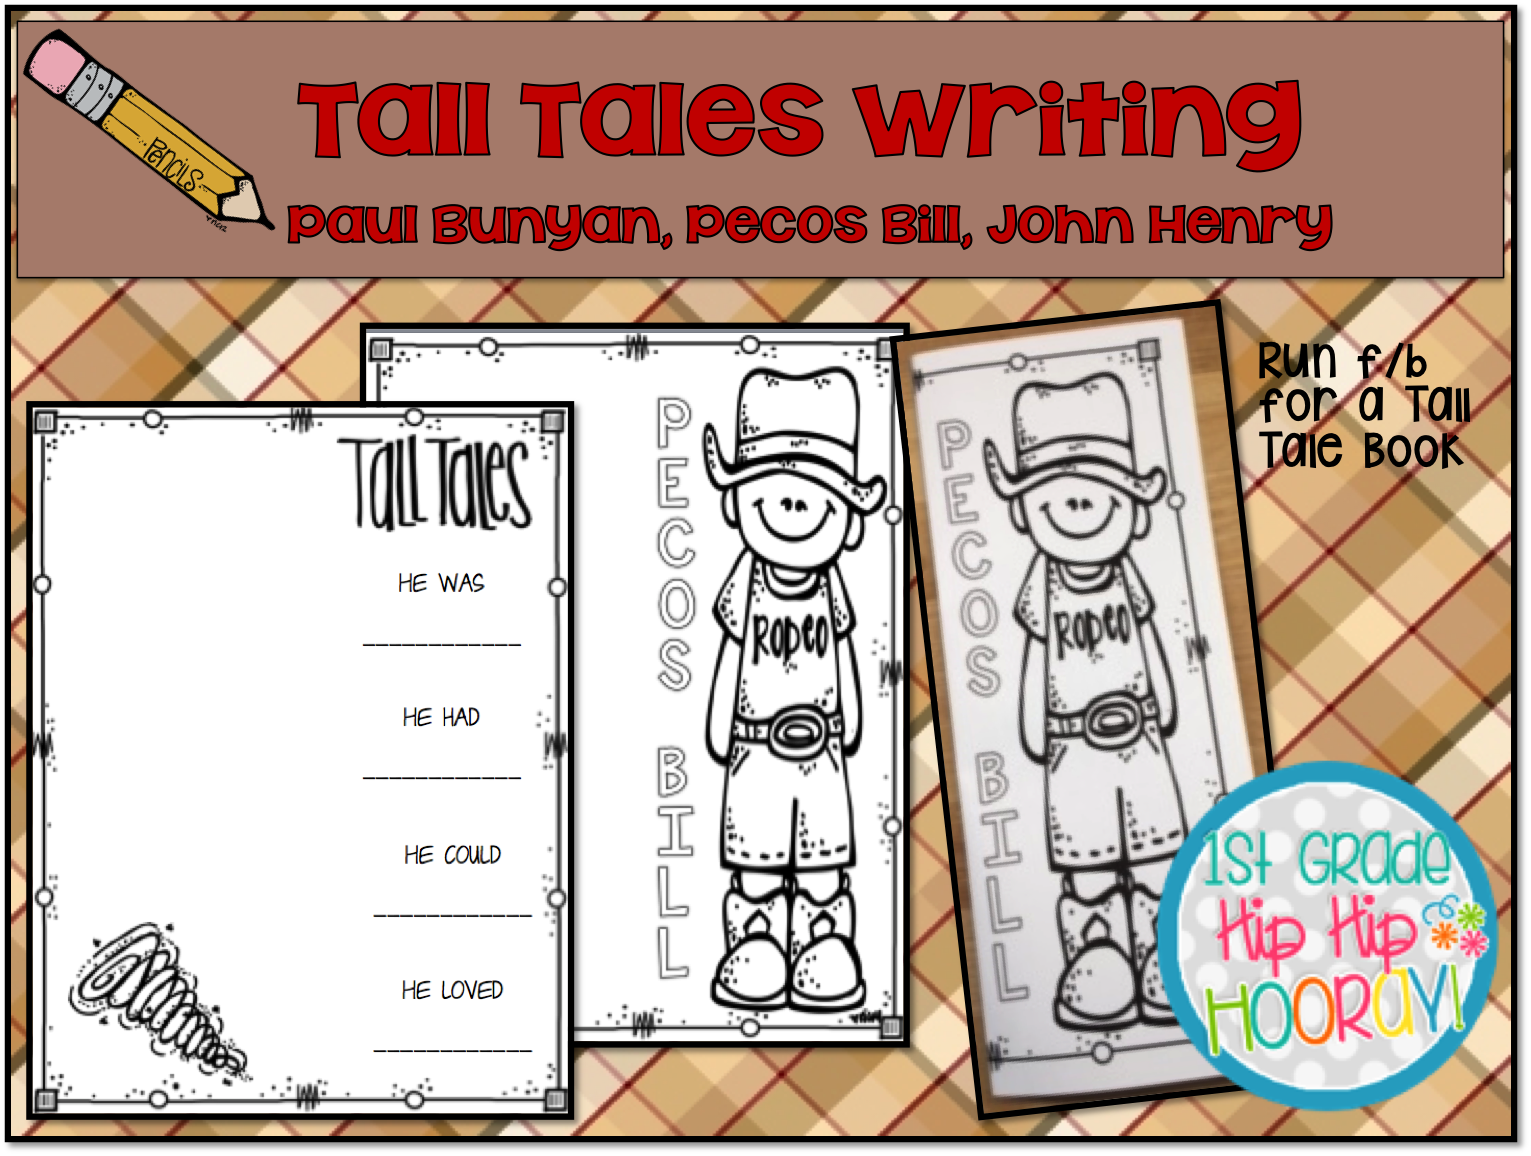 How to write a good tall tale